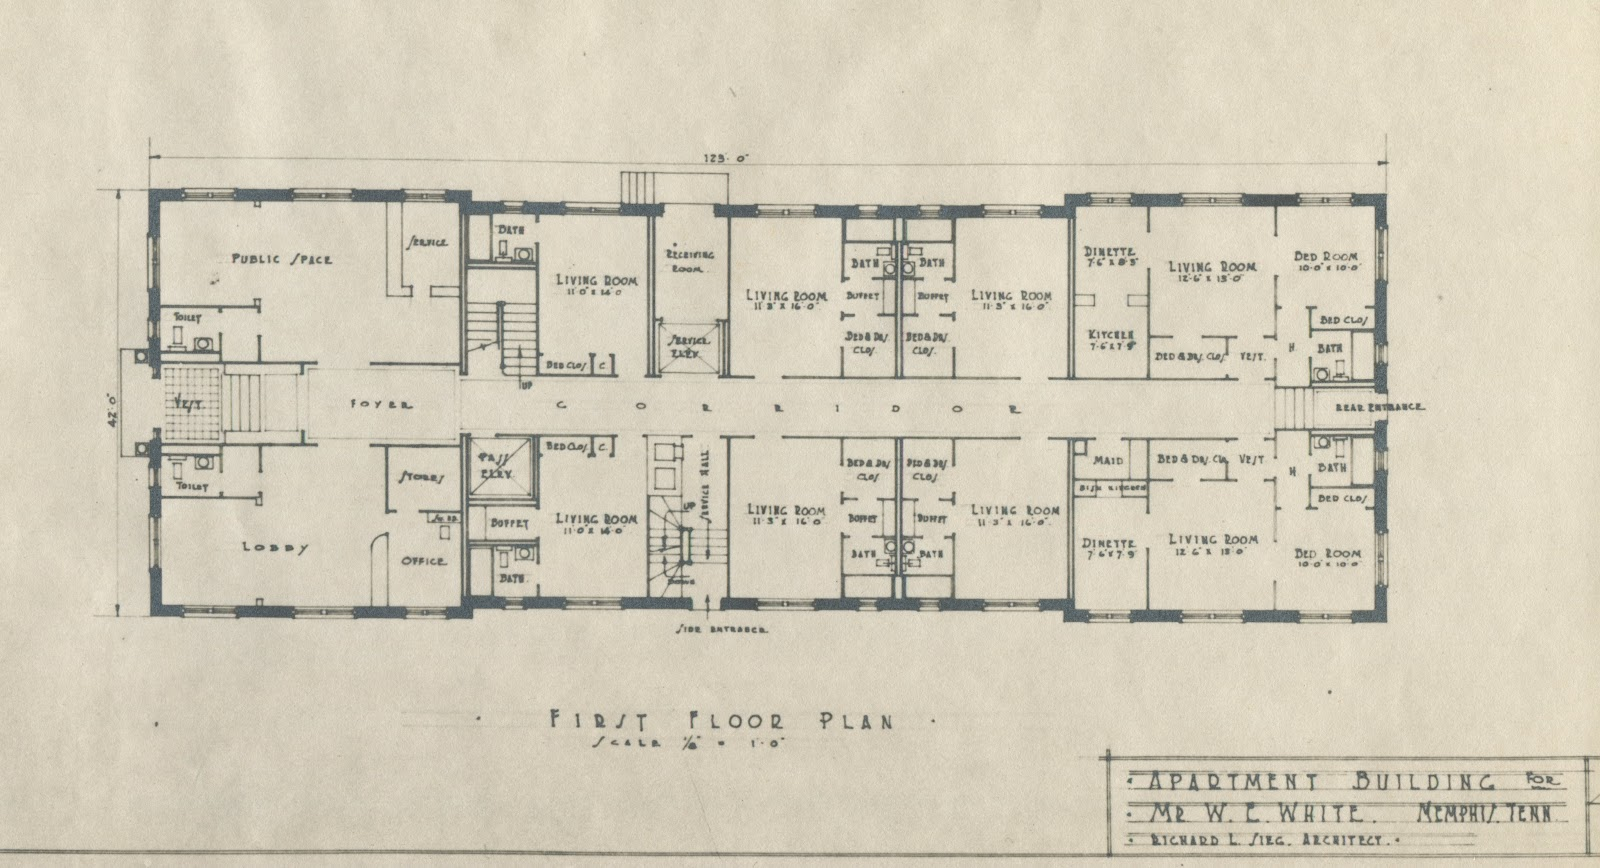 Apartment building plans 6 units images for Apartment building plans 4 units